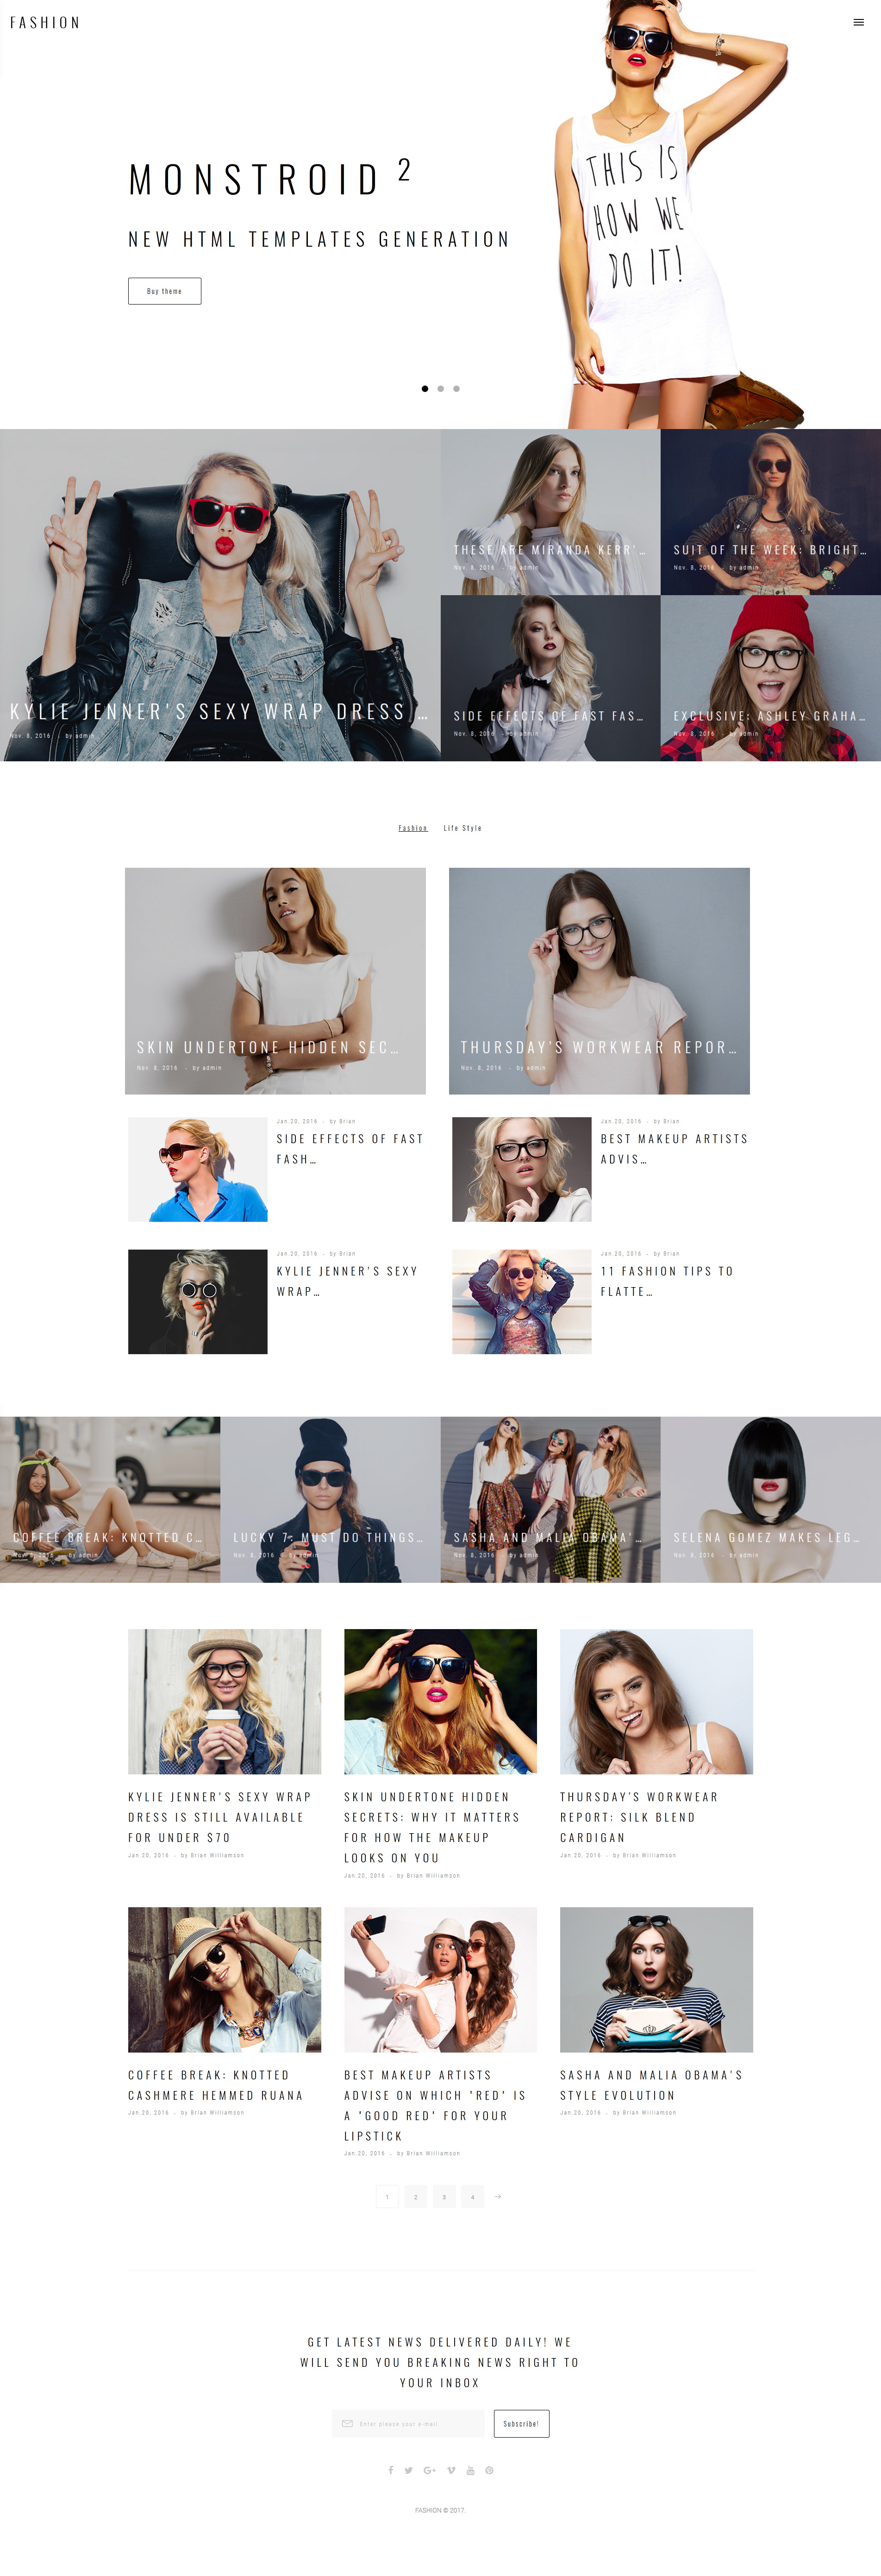 Free website templates for free download about (2,503) 98